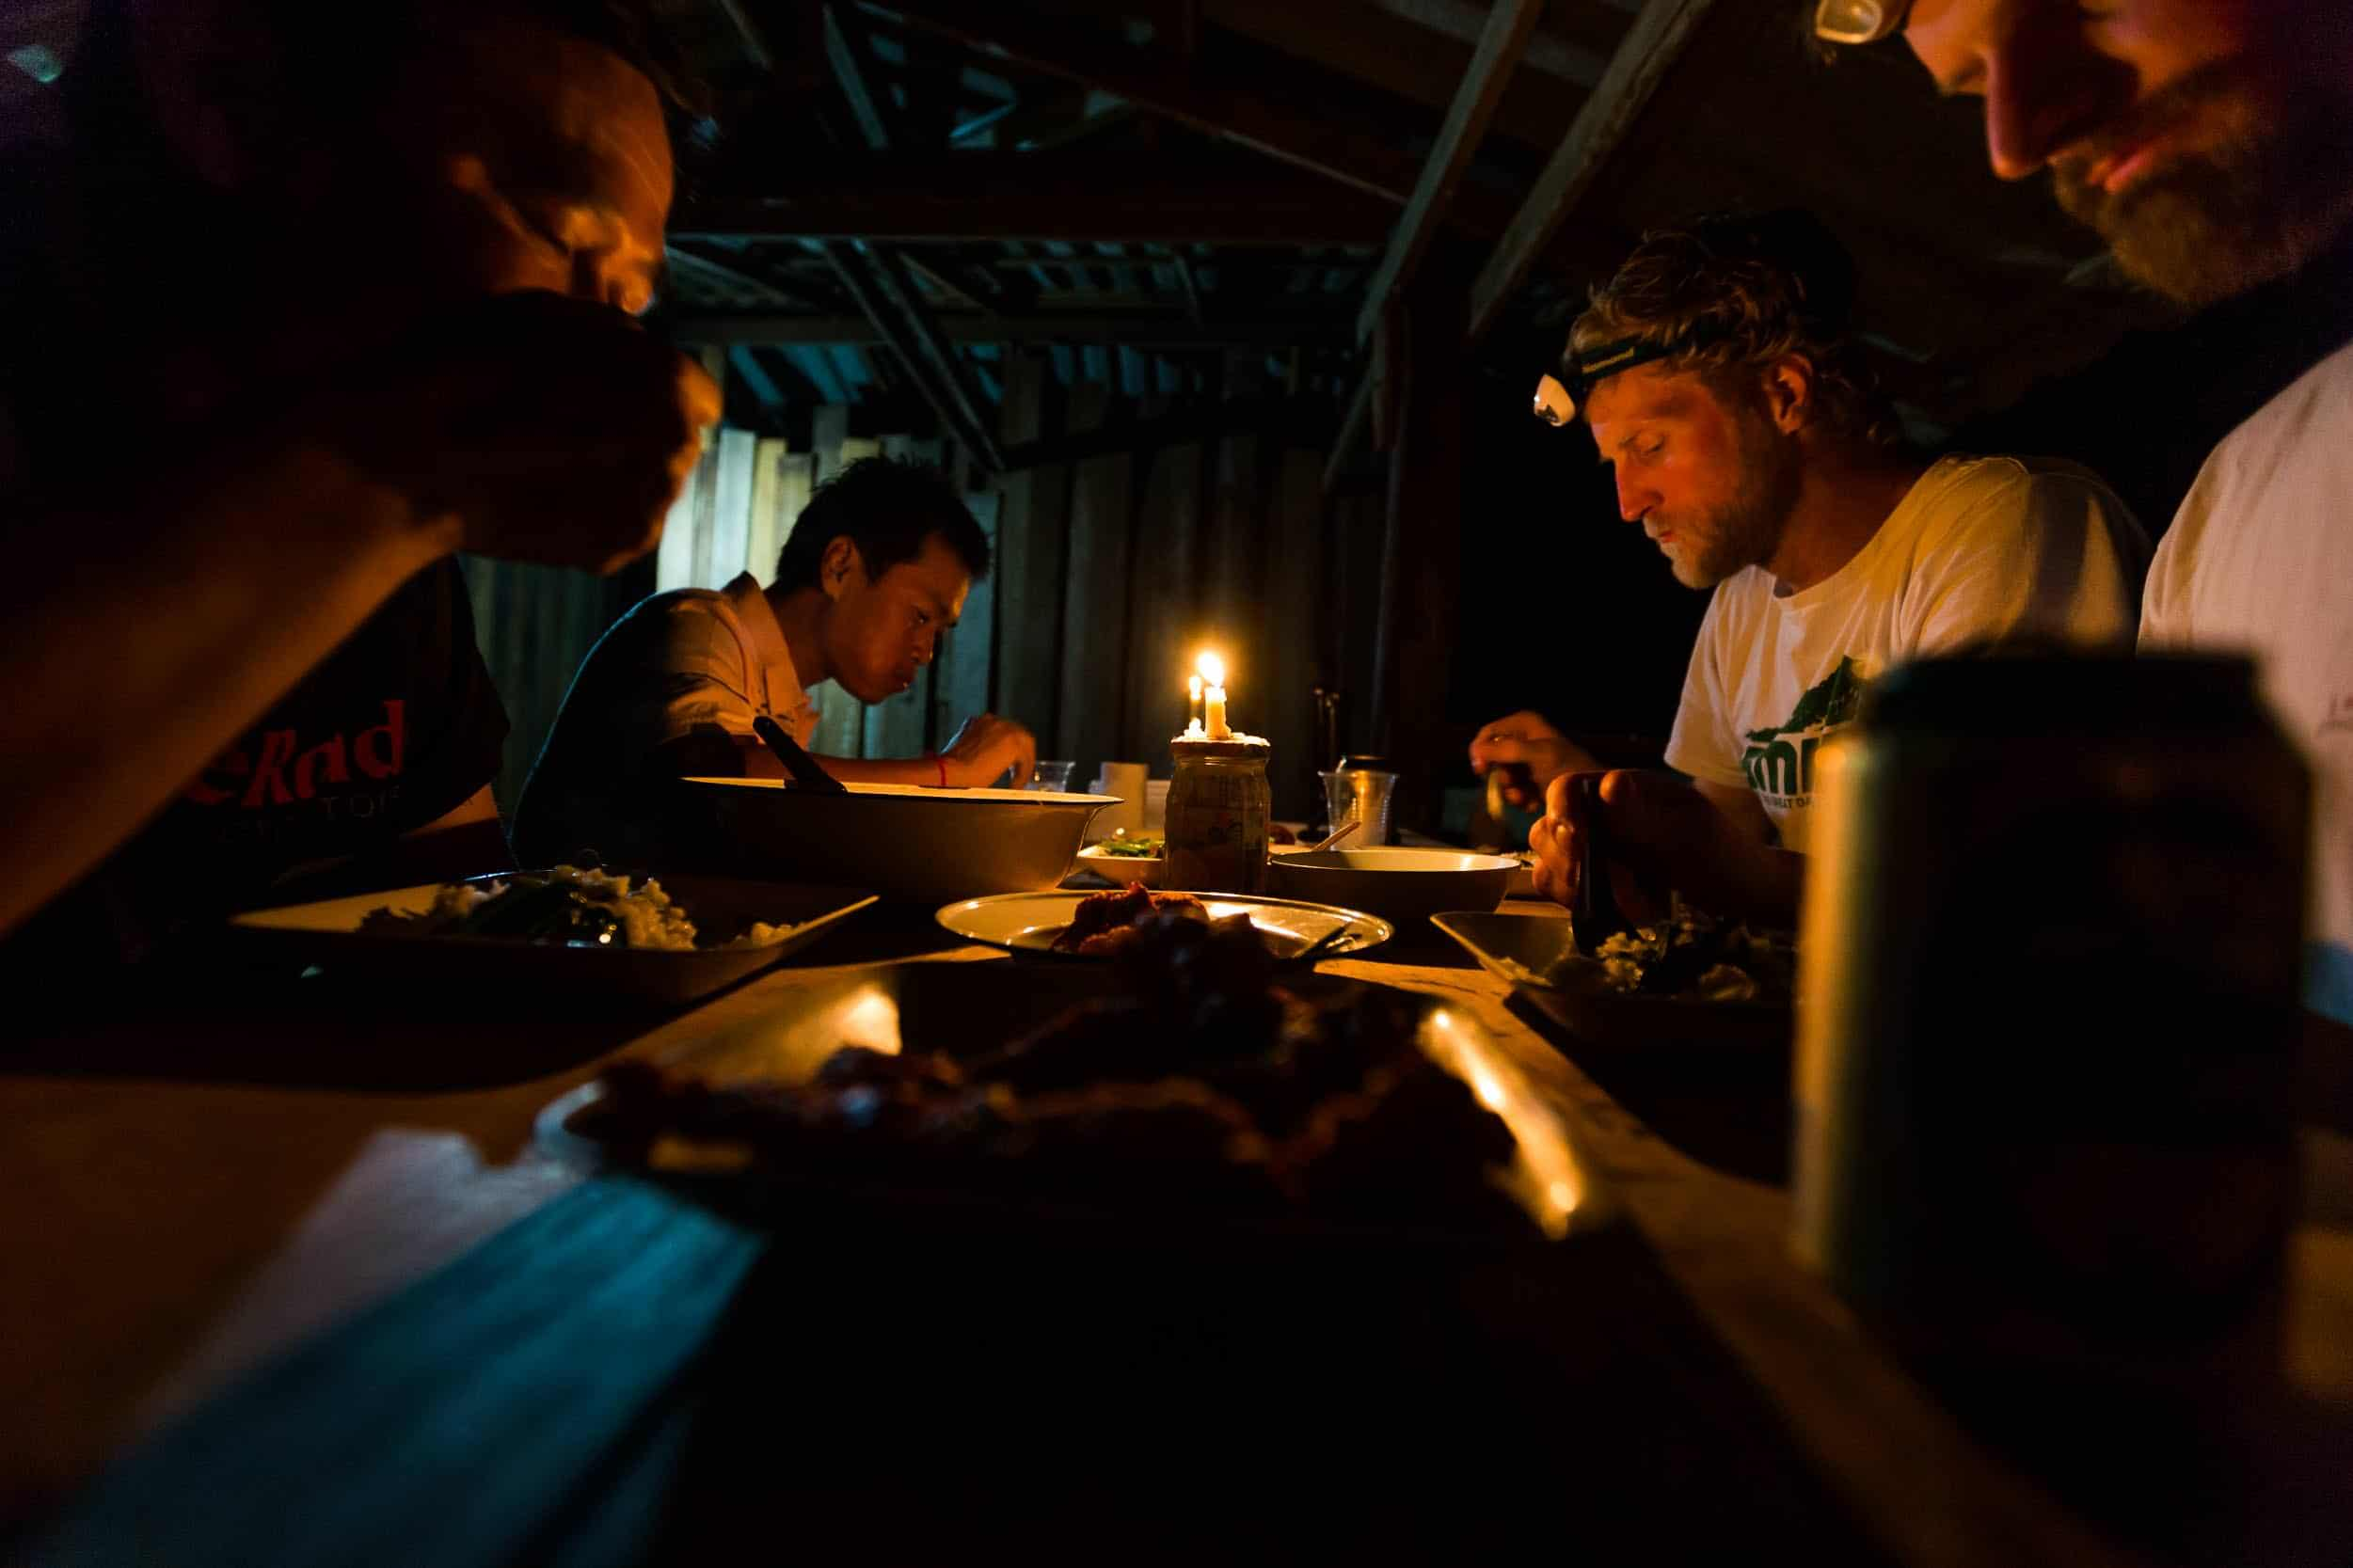 Andrew Whiteford, Jay Goodrich, Mr. Sak, and Win Jalawin eat dinner in local tribe member's house in the higher altitude jungle near Ban Sop Gai, Thailand